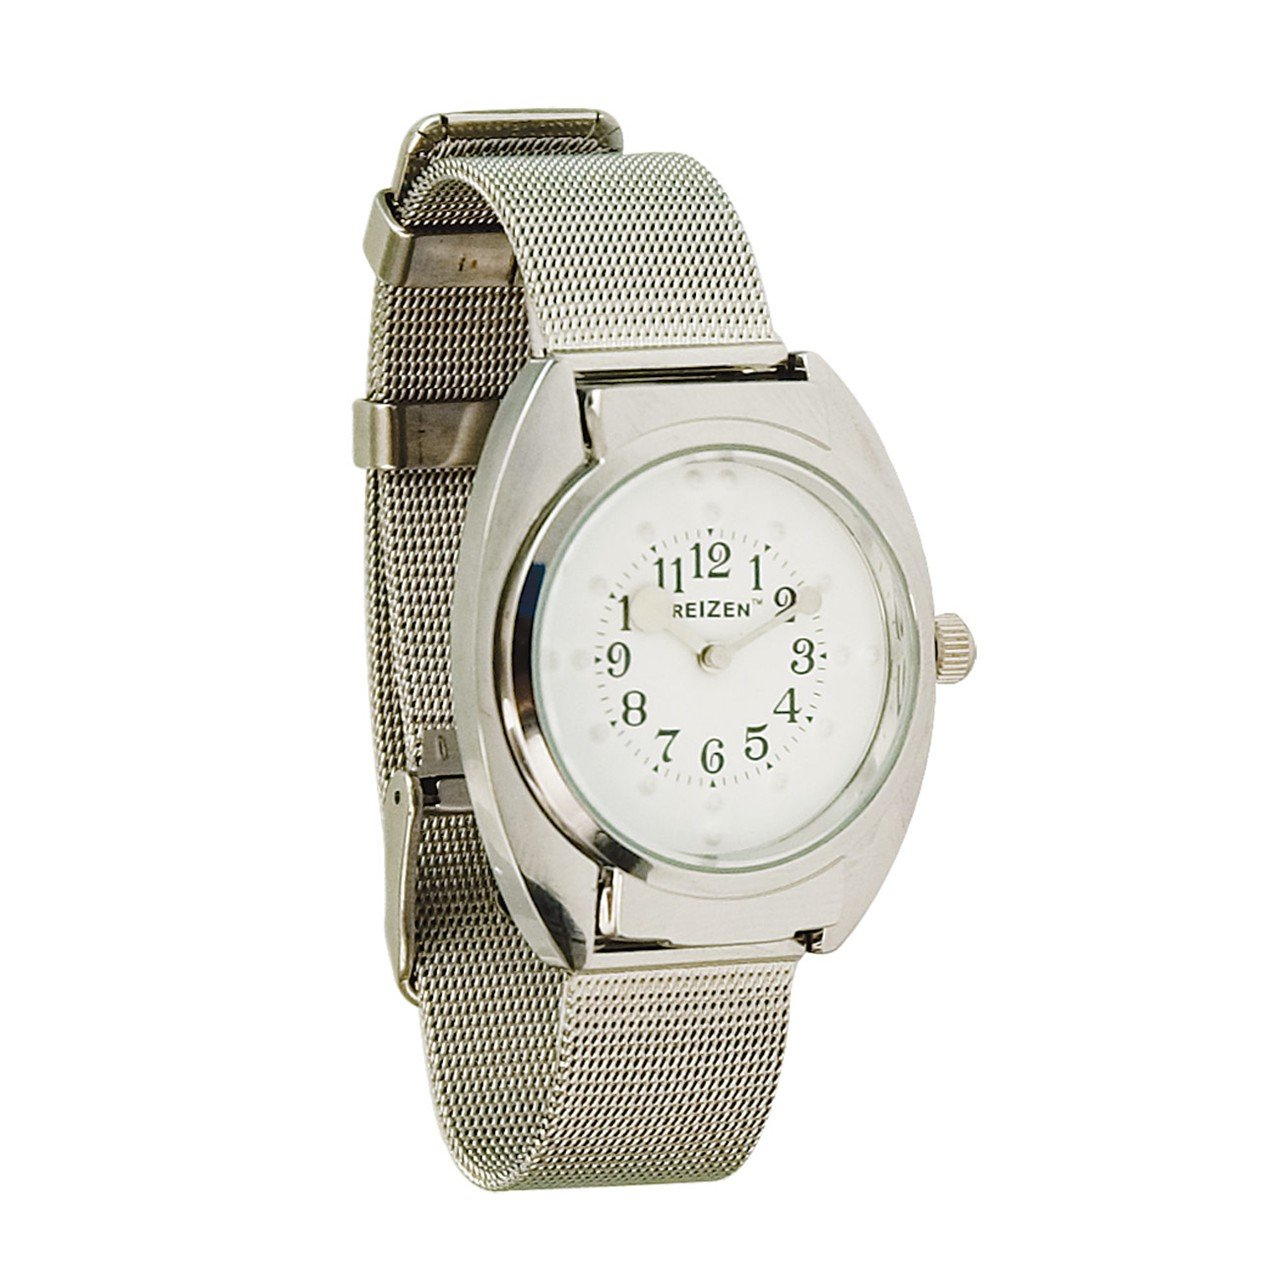 Unisex Braille Watch-Chrome-Steel Mesh Band-White Dial